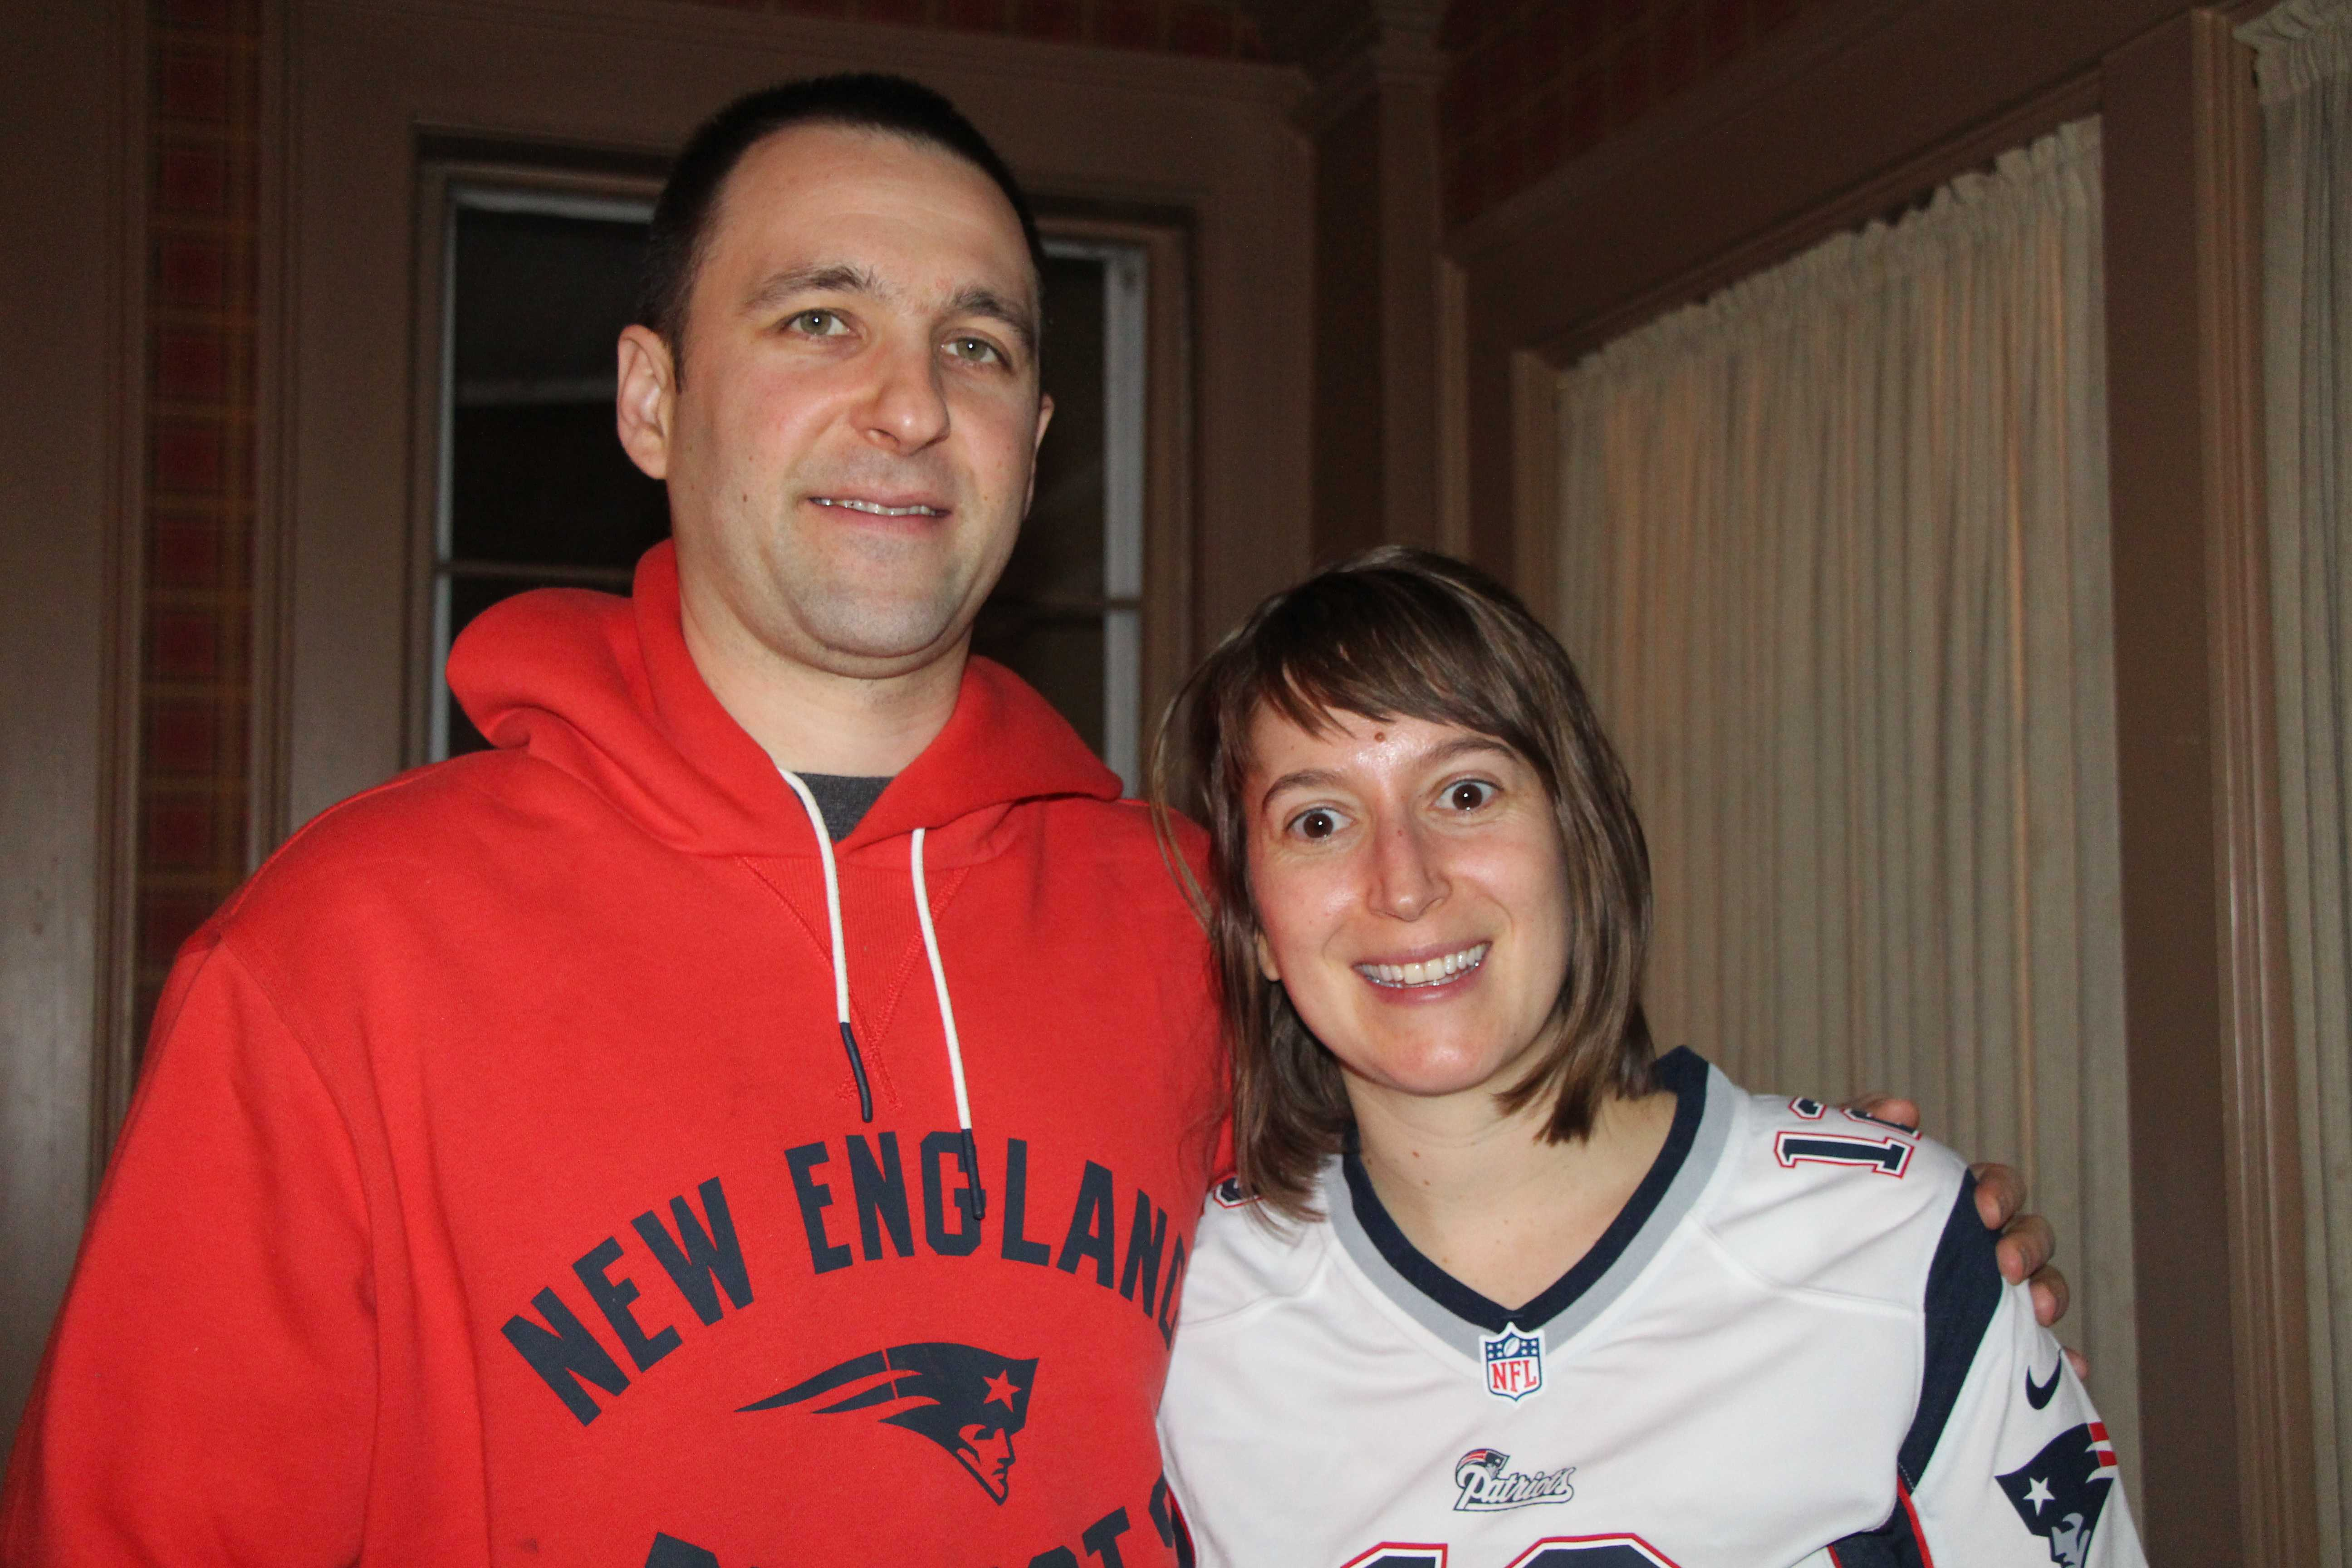 A couple enjoying the AFC Championship game at a hotel in New Hampshire